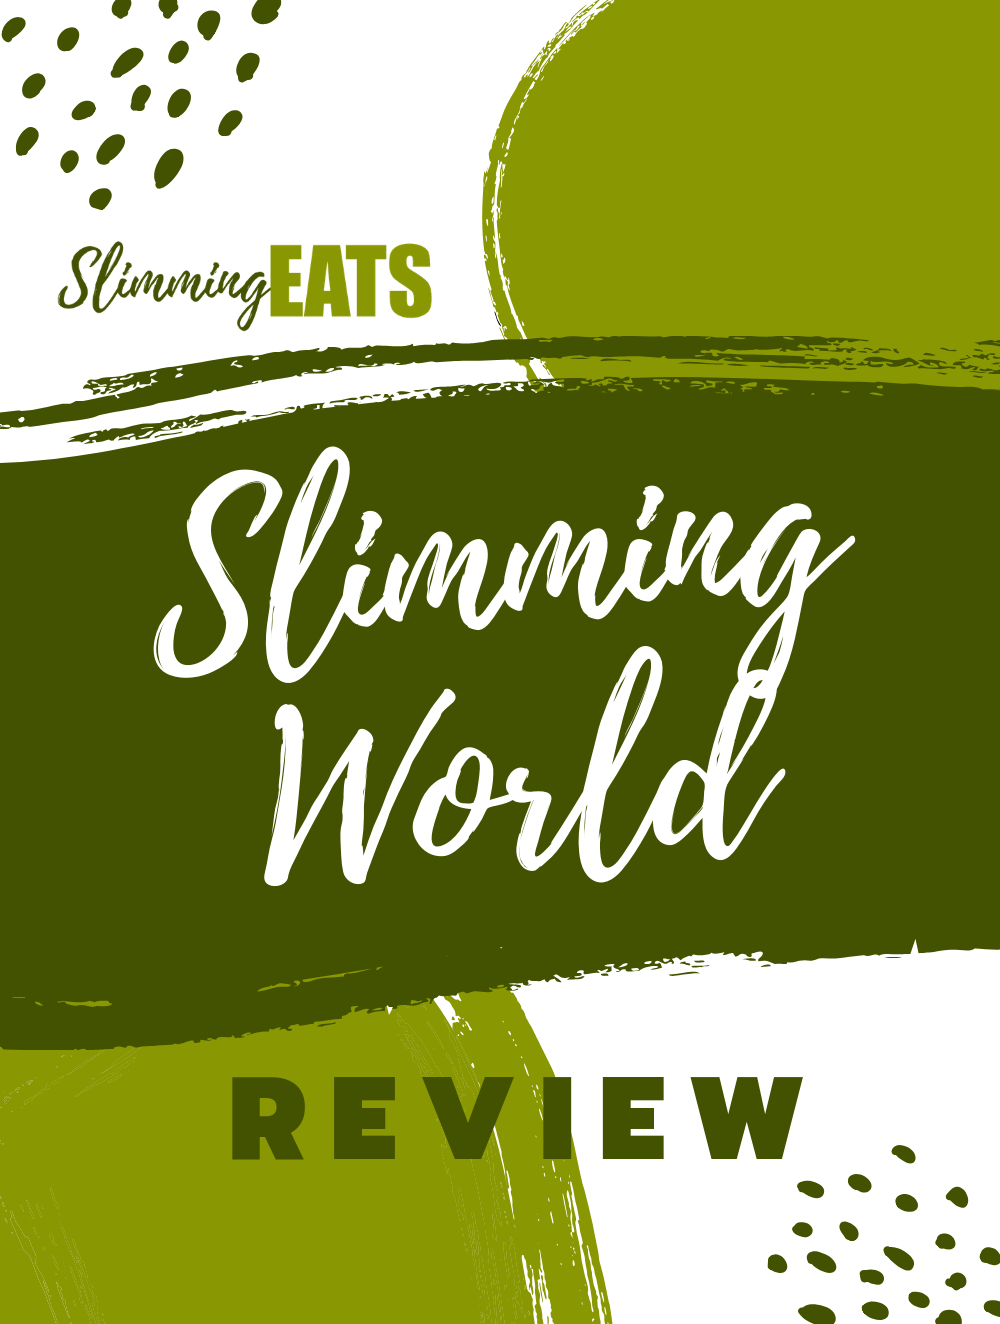 Slimming World review pin image